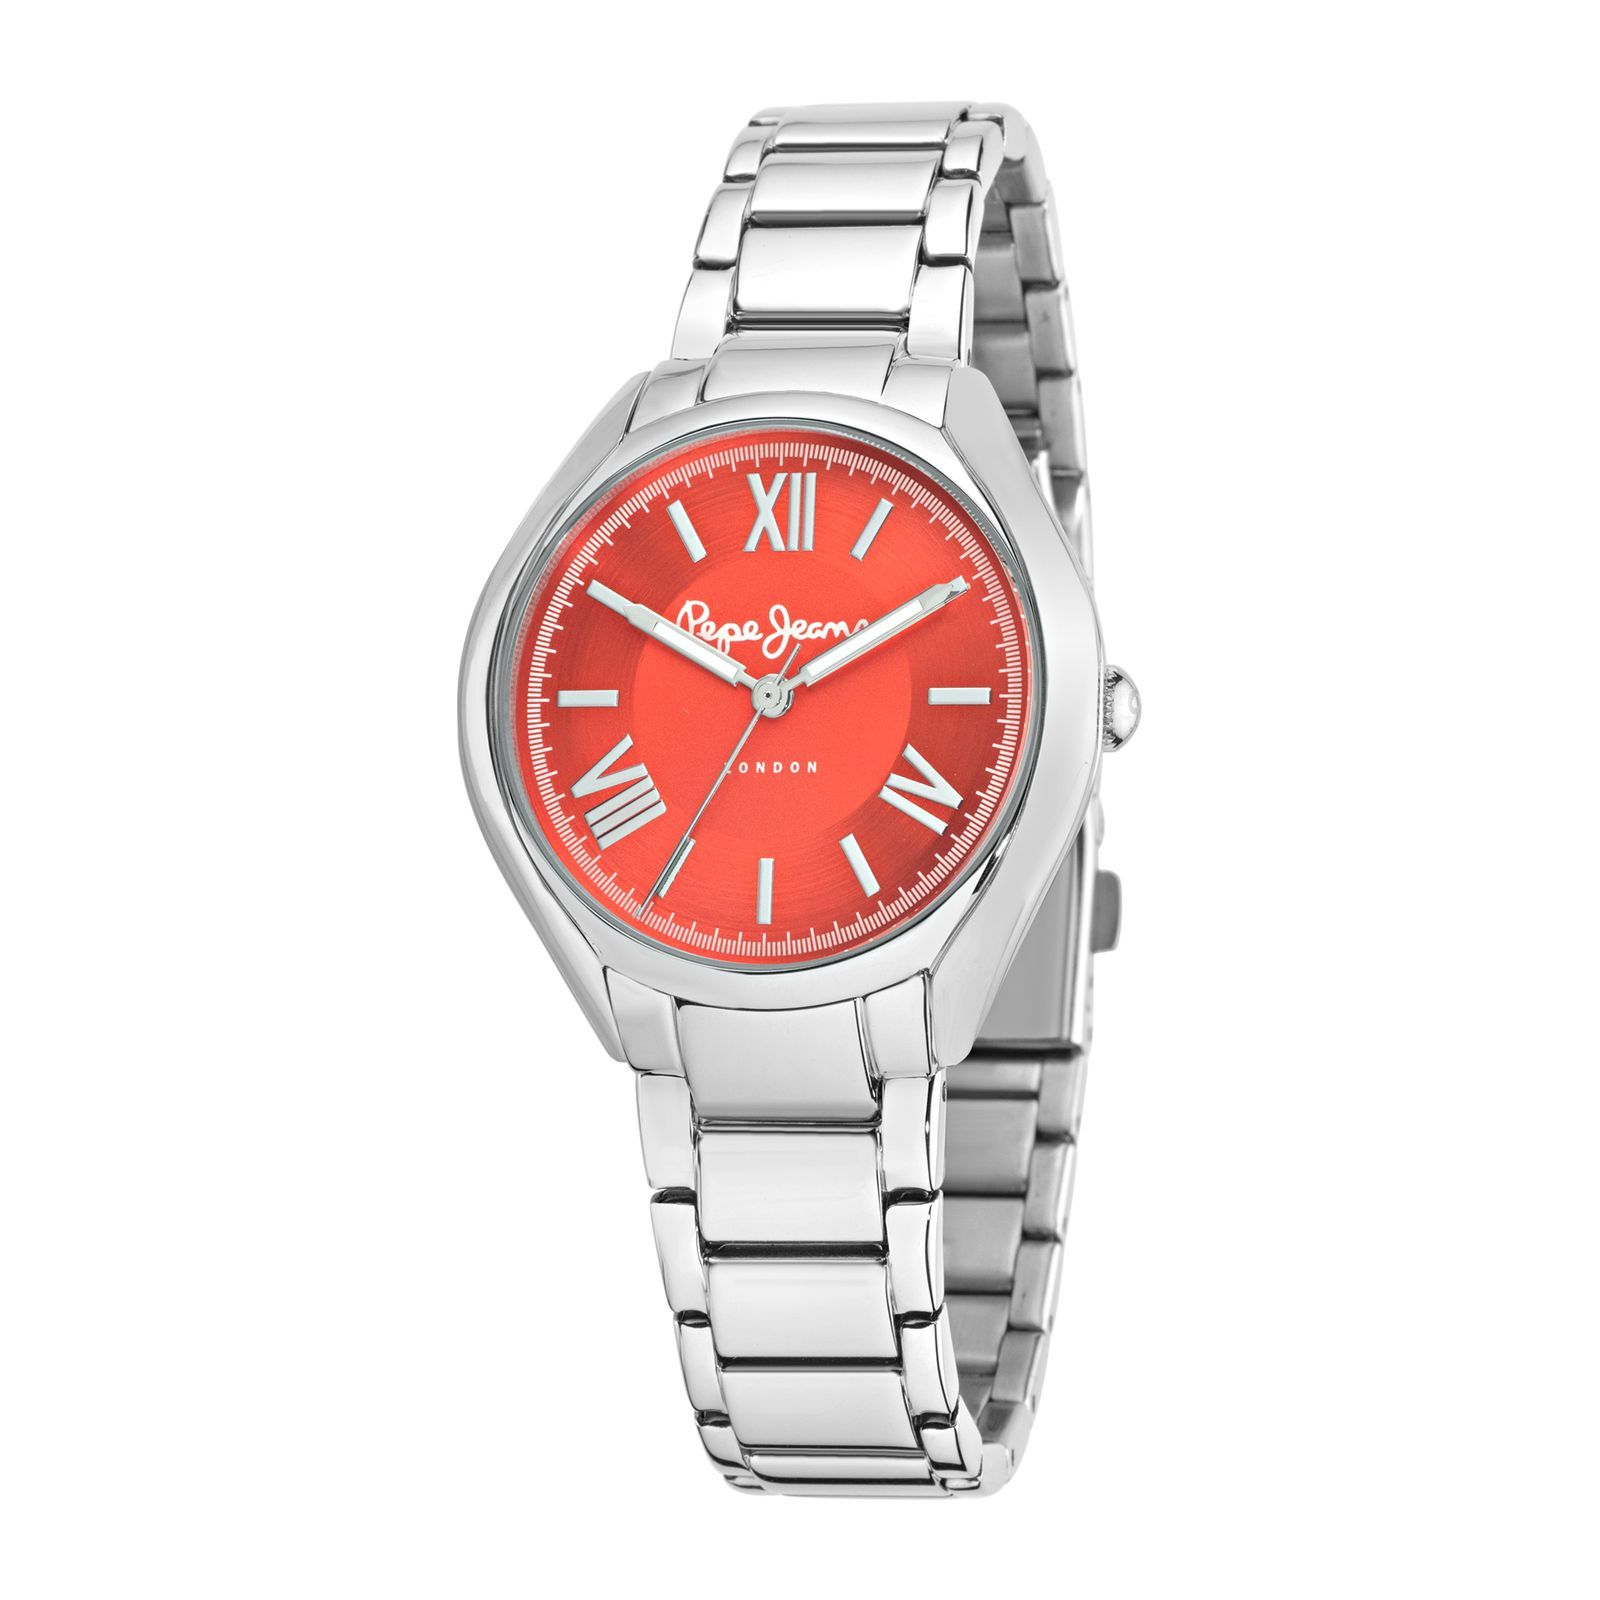 Pepe Jeans London Montre Alice - Argent/Orange